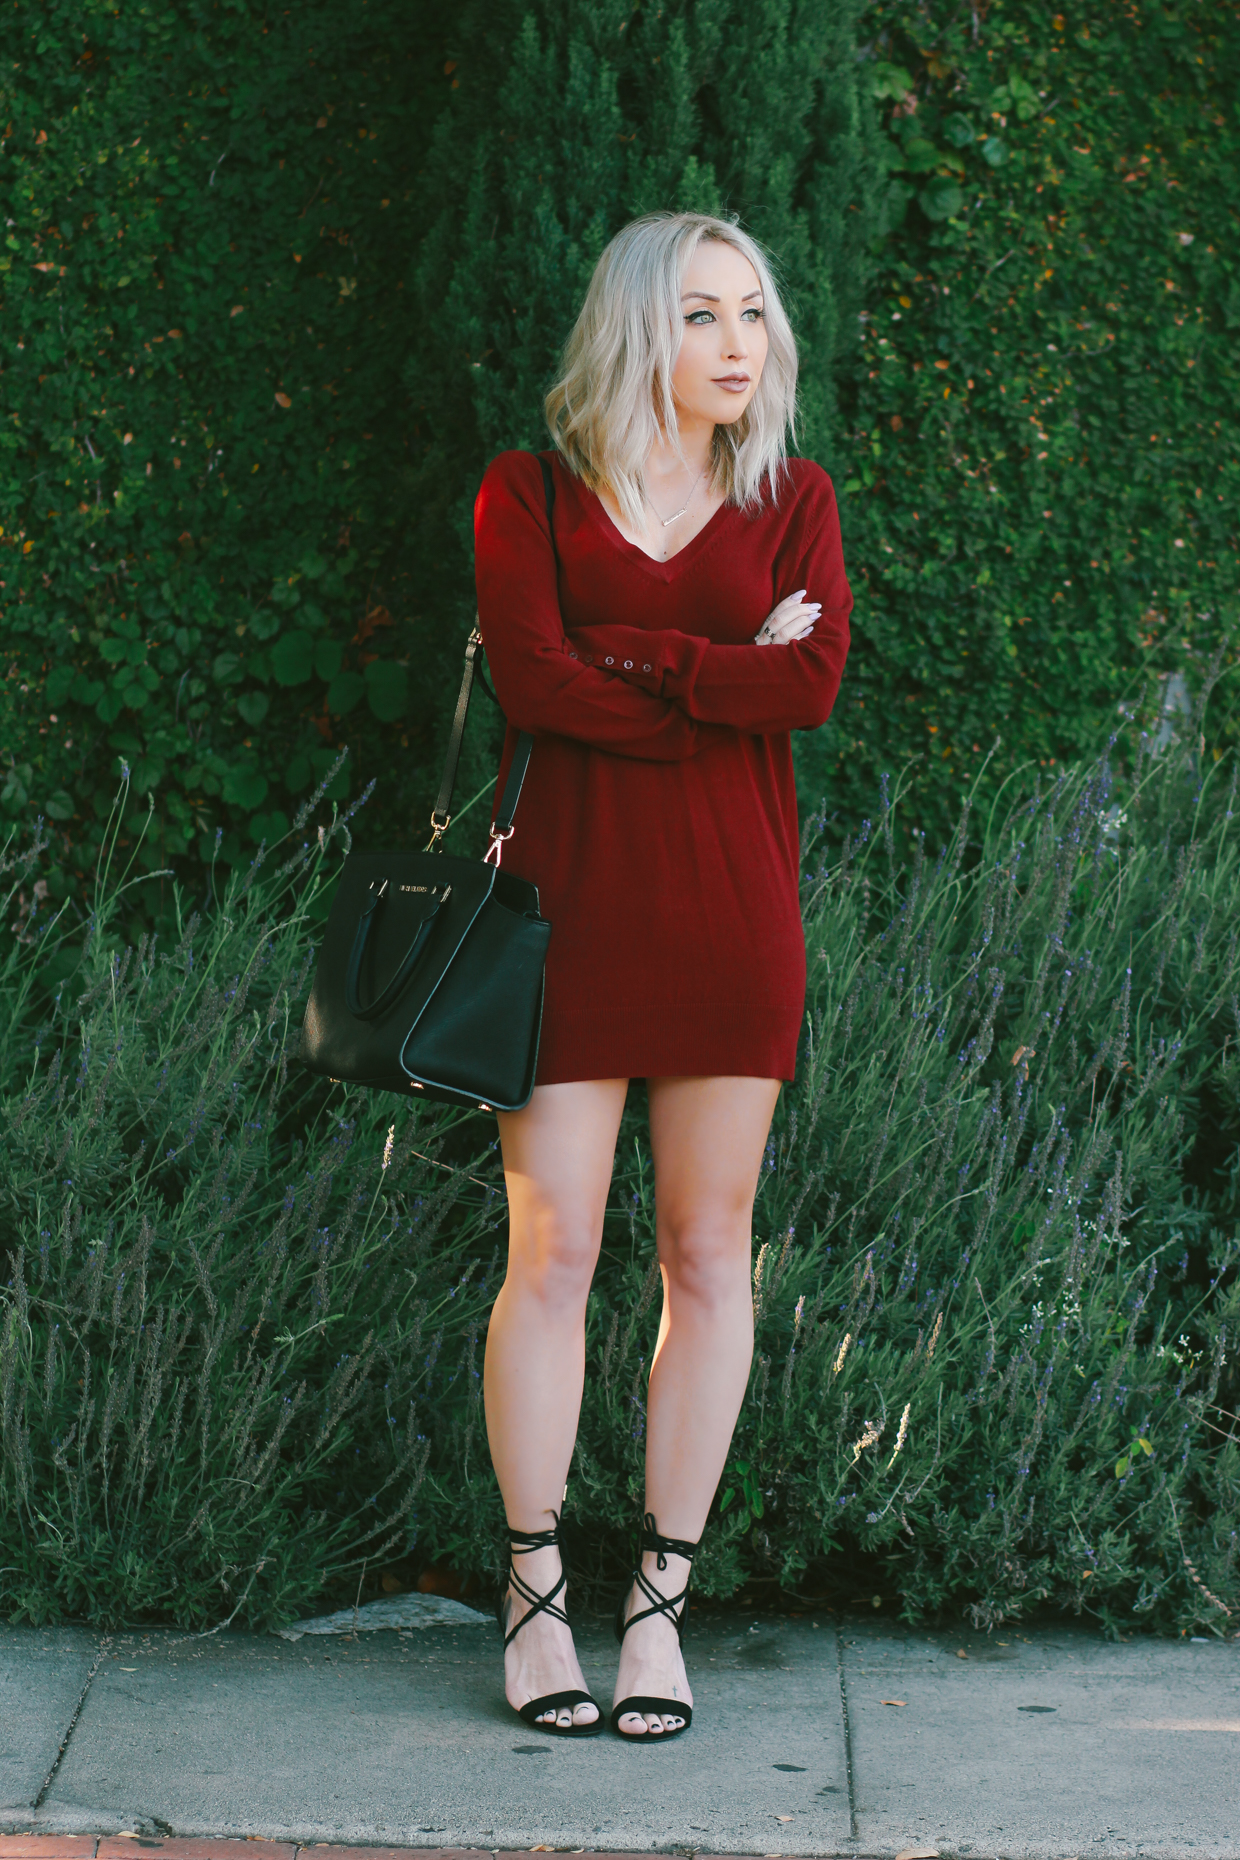 Blondie in the City | Burgundy Sweater Dress | Styling A Sweater Dress